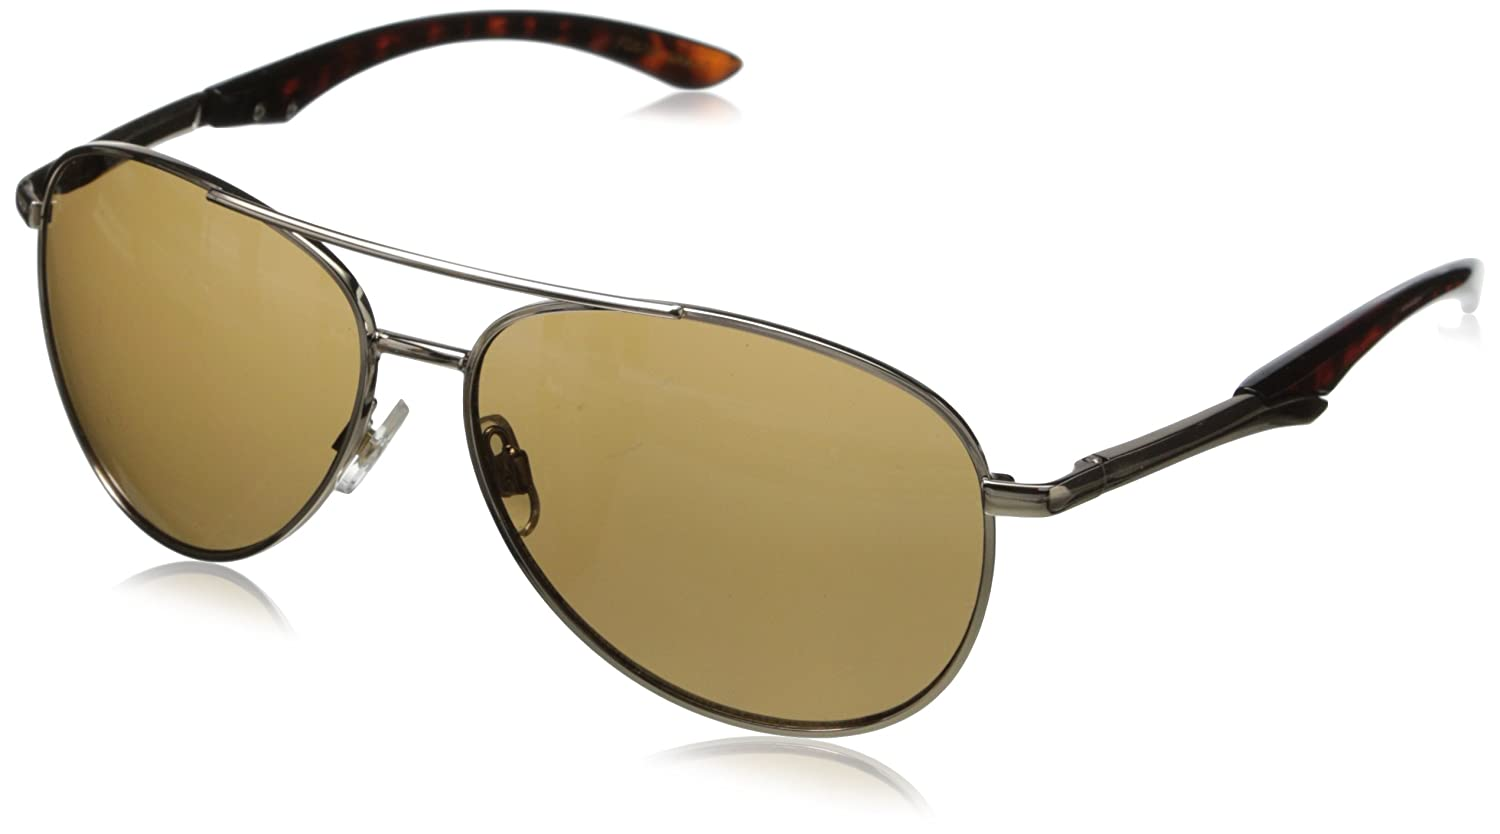 70a95ab28a Foster Grant Women s Madonna Aviator Sunglasses  Amazon.co.uk  Clothing